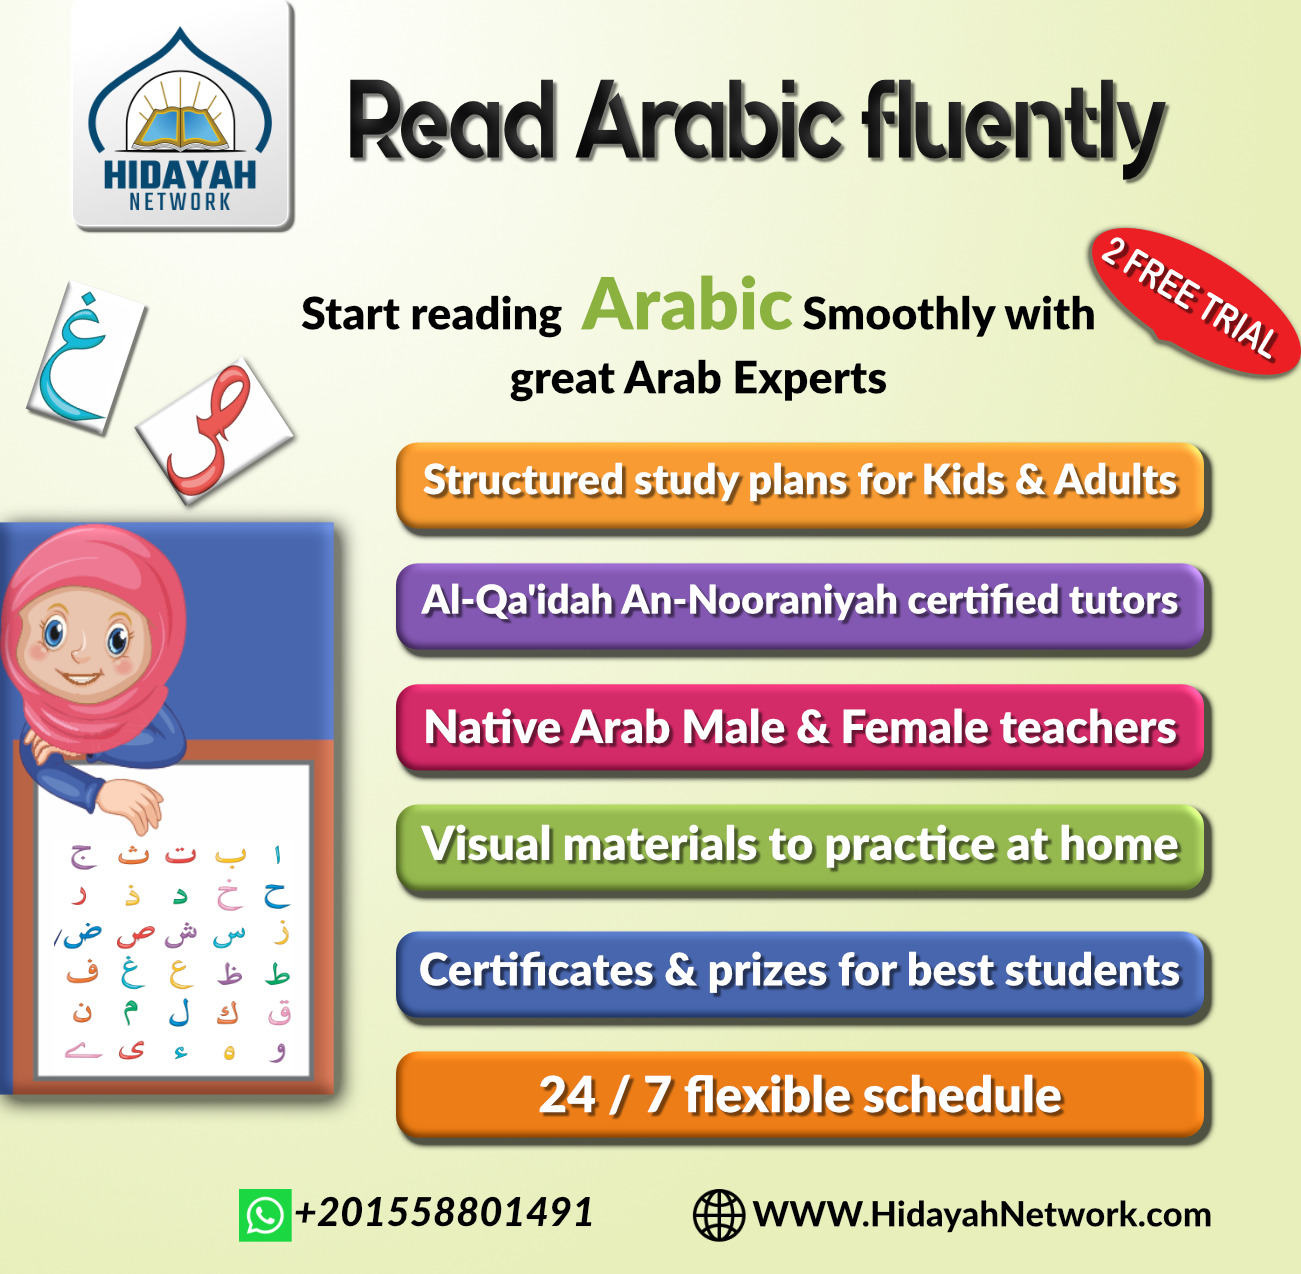 Read Arabic fluently in a very short time- Basic foundation course plans